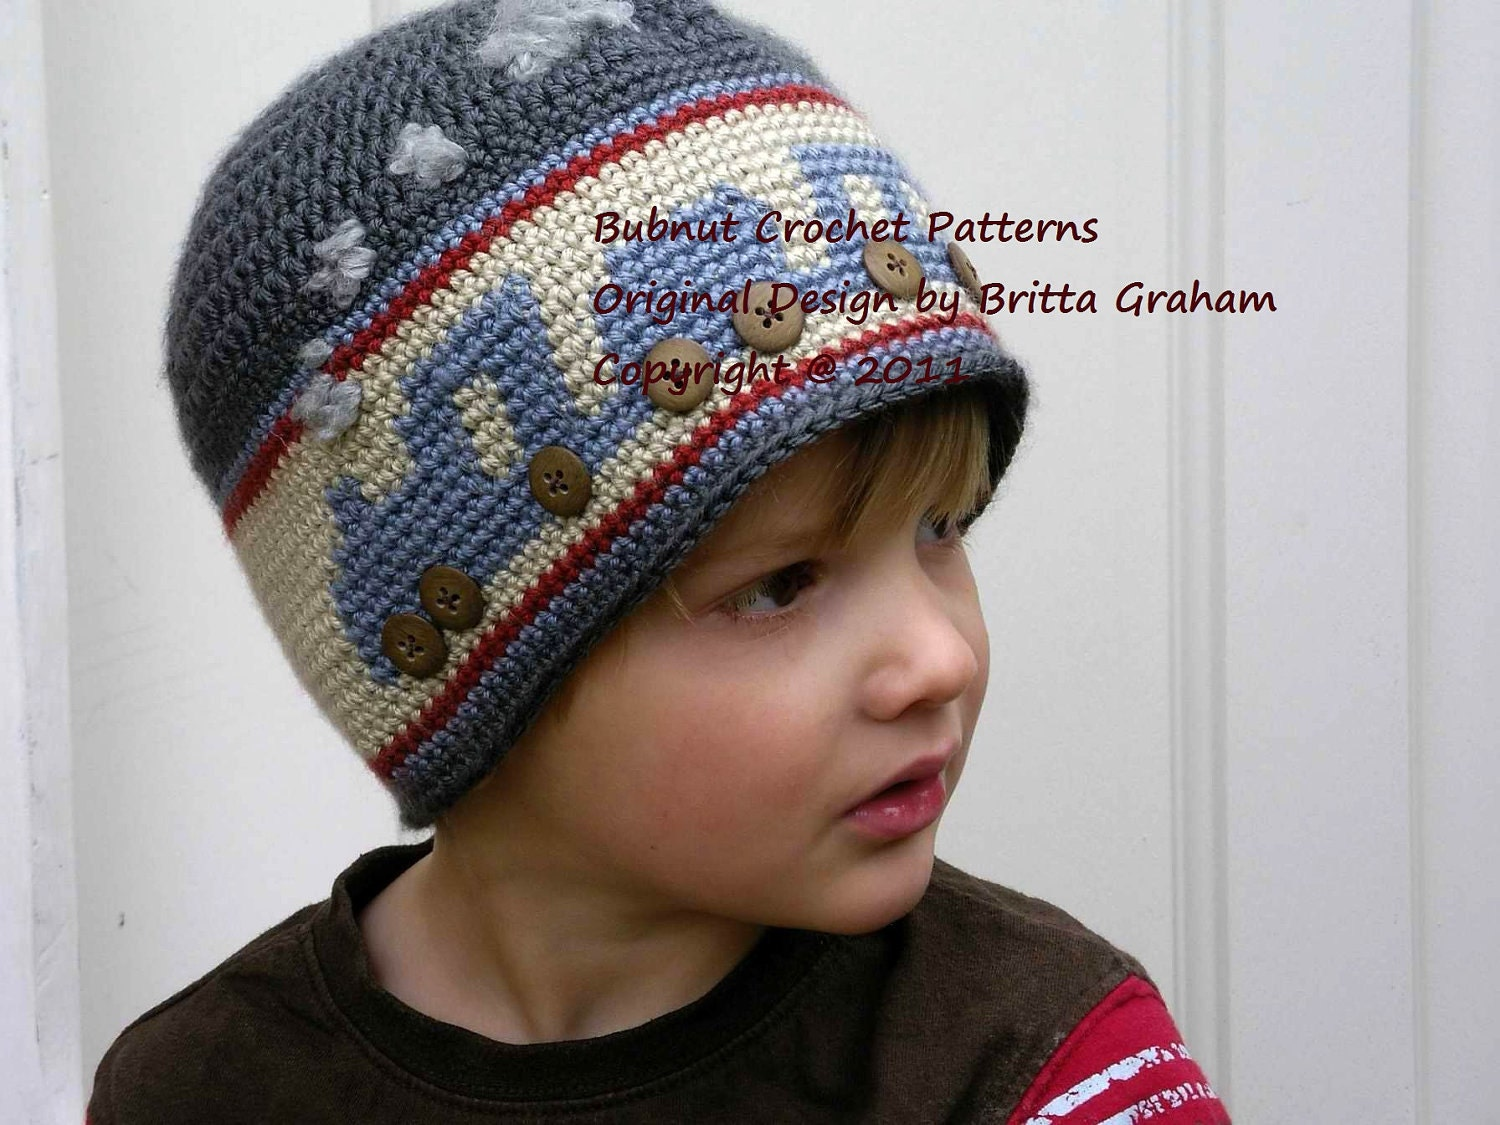 Free Crochet Hat Pattern For Thomas The Train : Boys Choo Choo Train Hat Crochet Pattern No.402 by ...